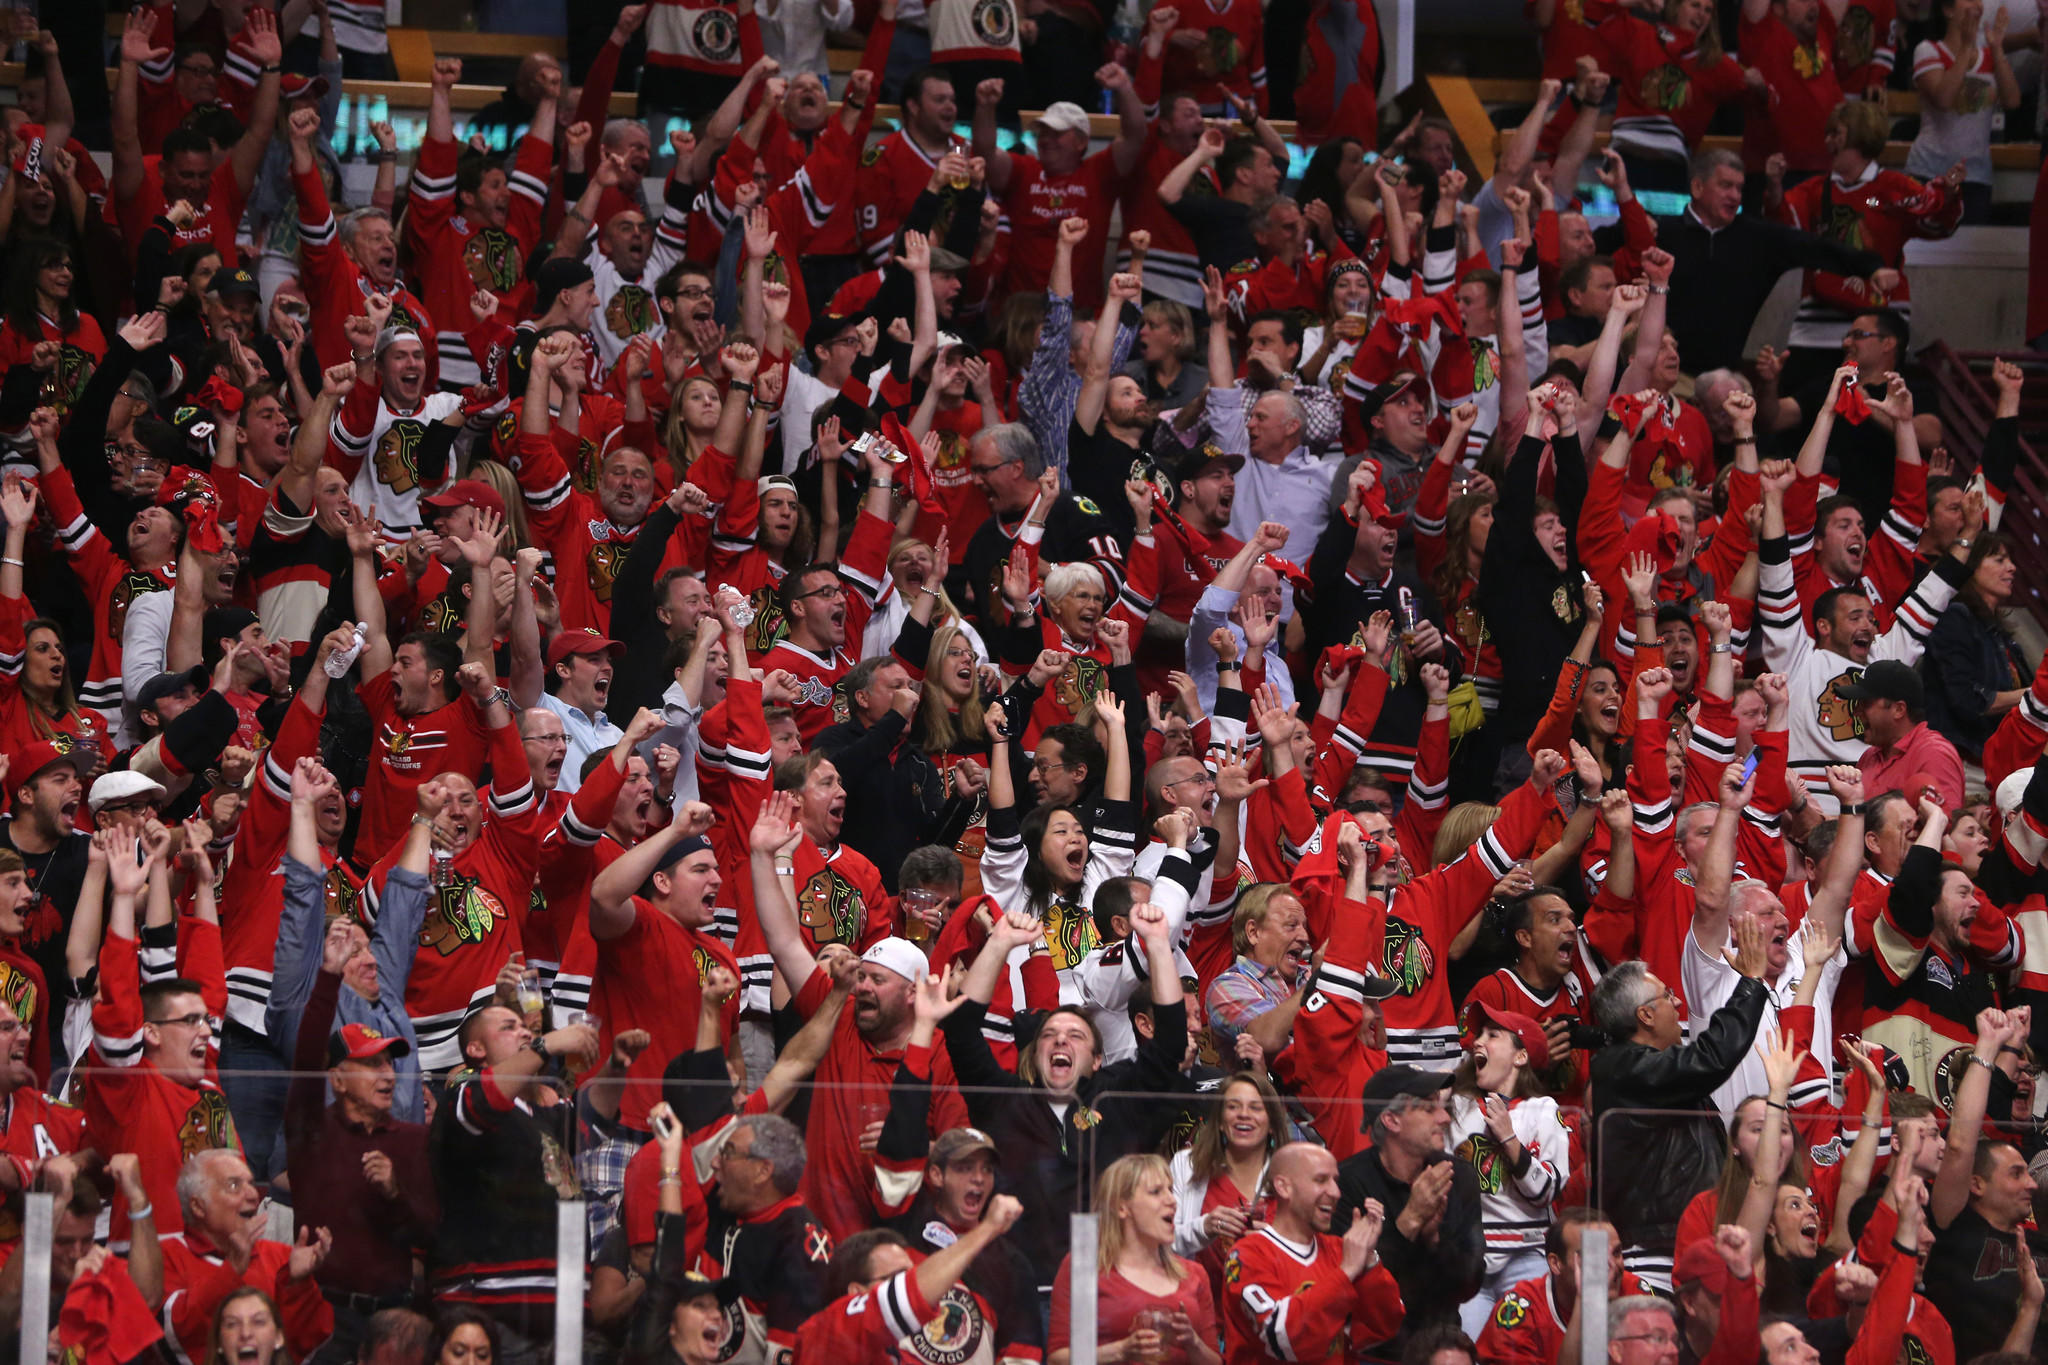 Blackhawks fans react to a goal by left wing Patrick Sharp in the second period of Game 7.